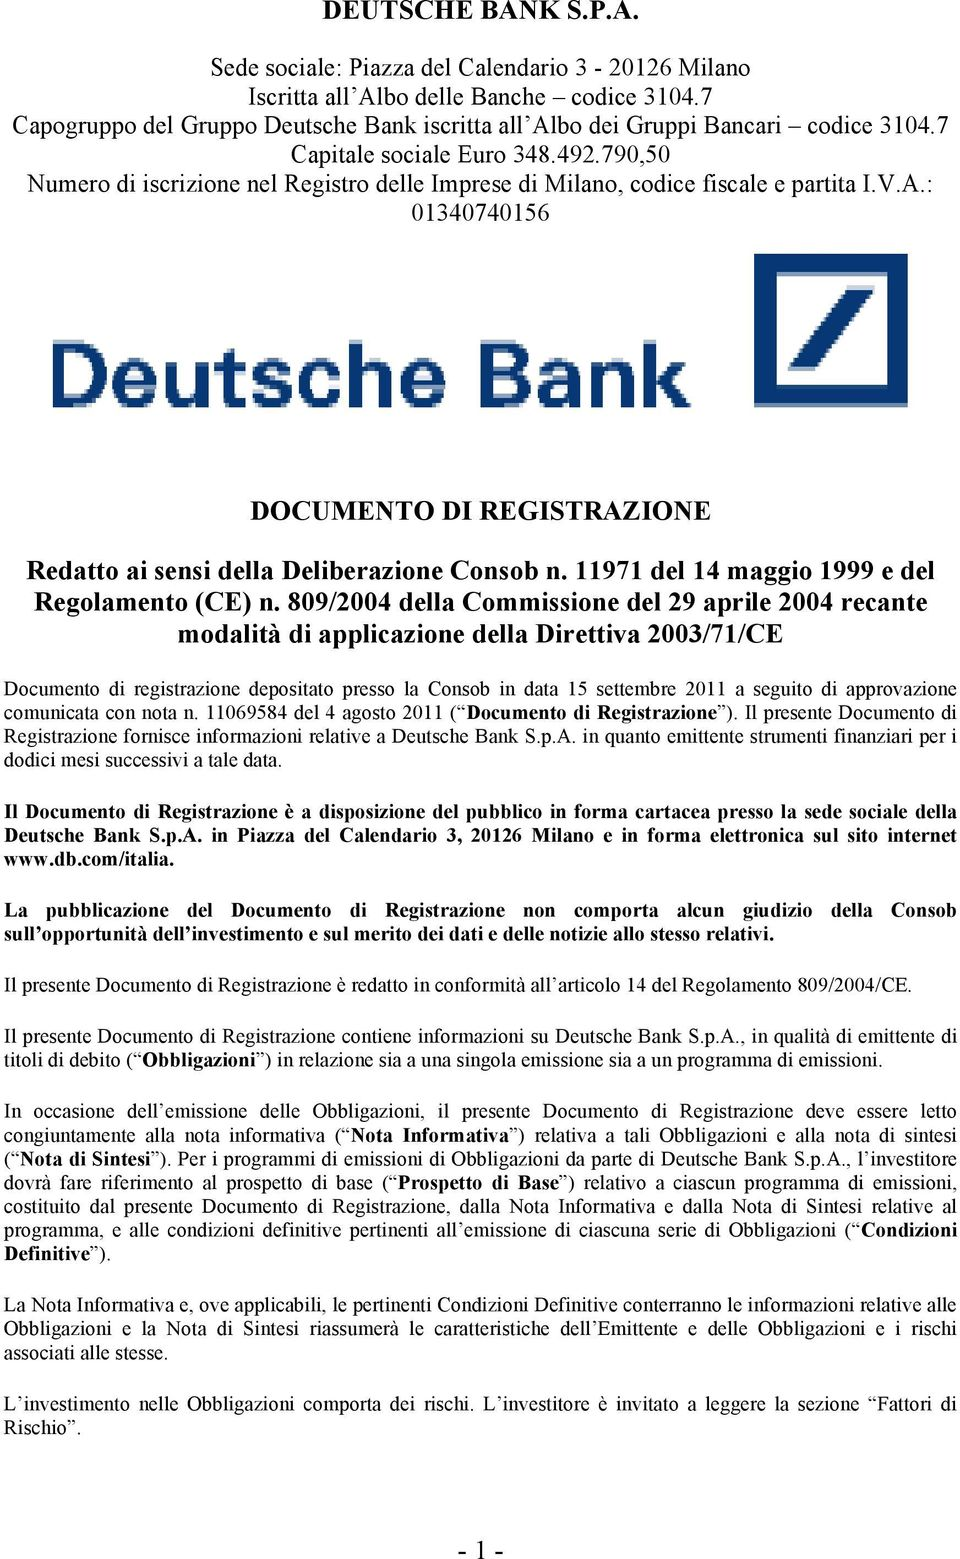 Piazza Del Calendario Milano.Deutsche Bank S P A Pdf